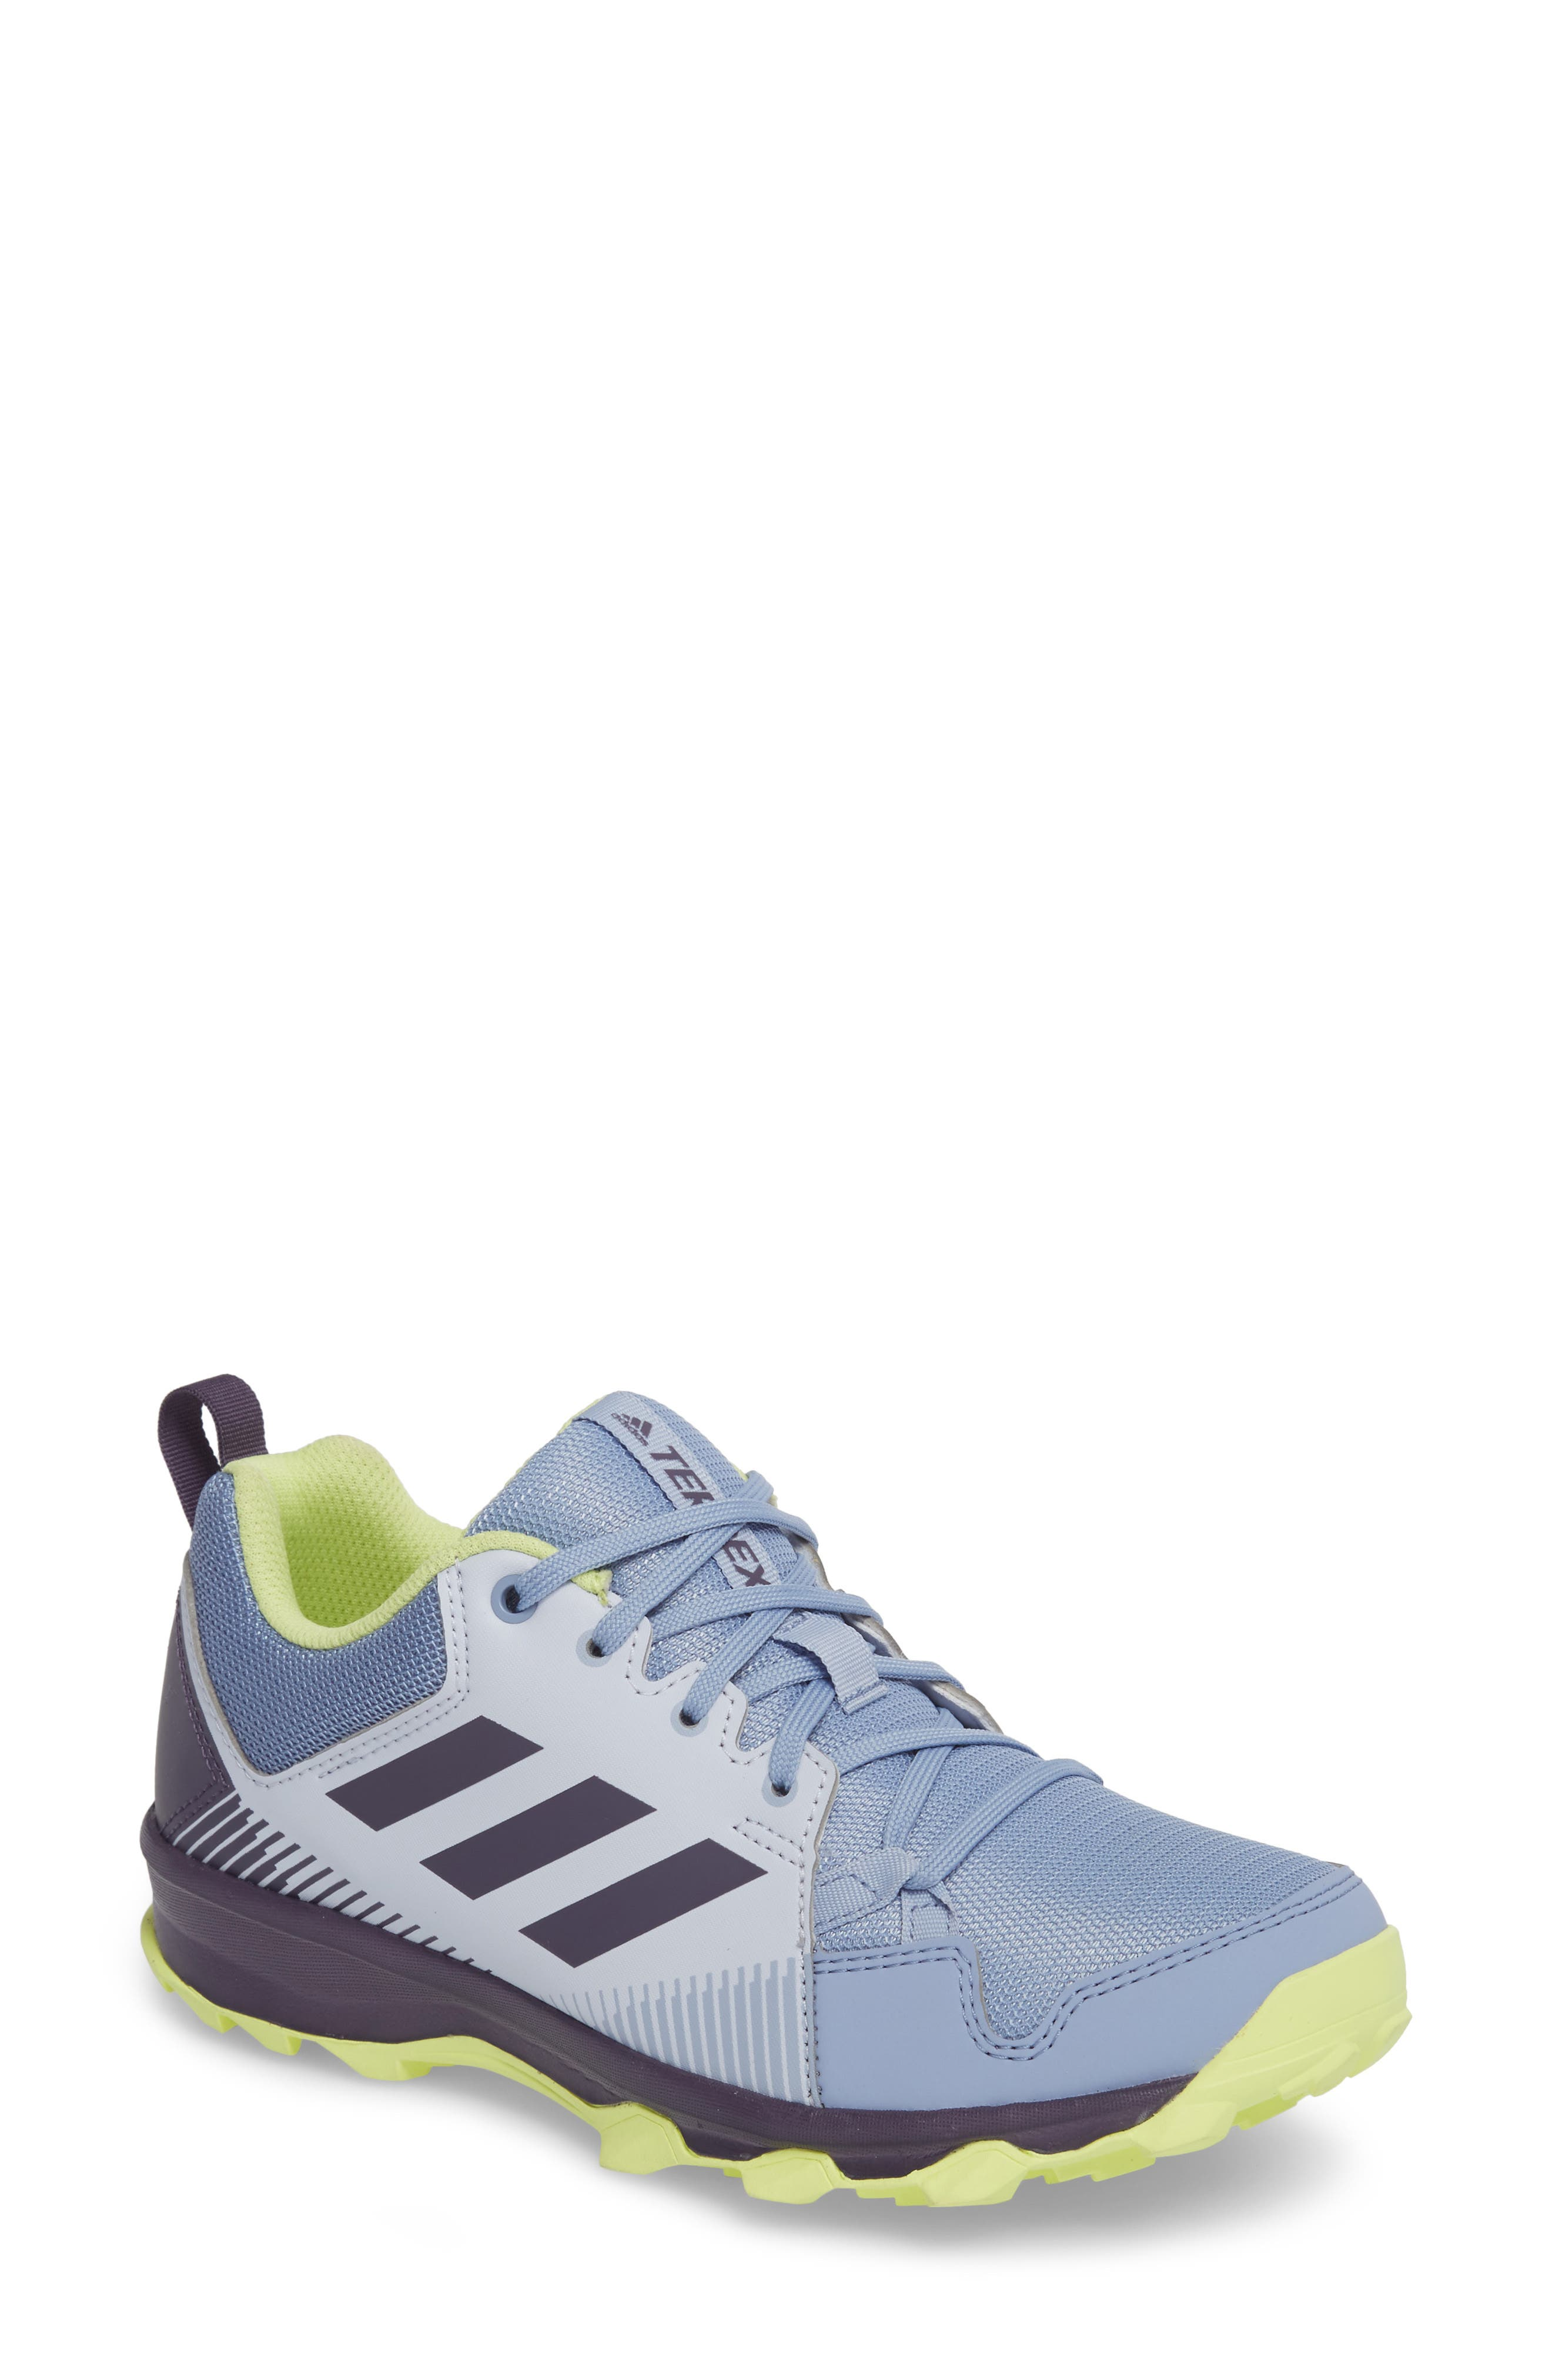 'Tracerocker' Athletic Shoe,                         Main,                         color, Aero Blue/ Purple/ Yellow